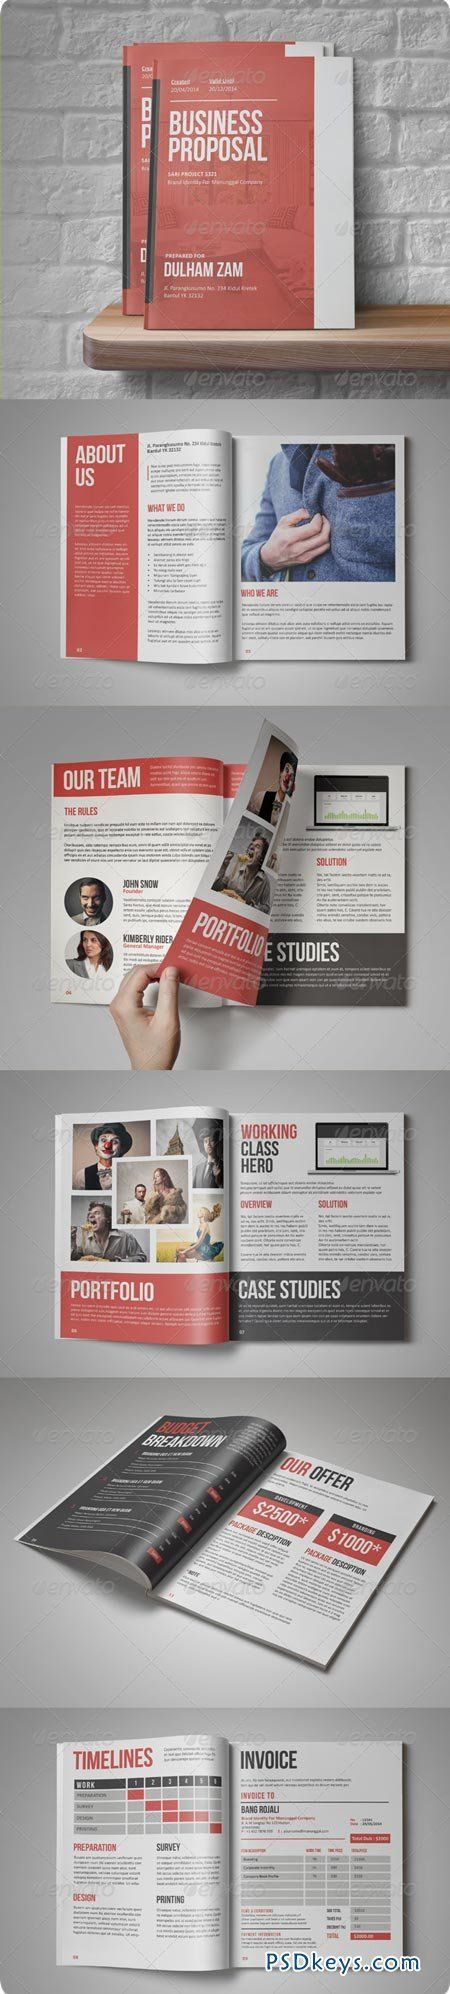 Best Images About Project Proposal On Layout